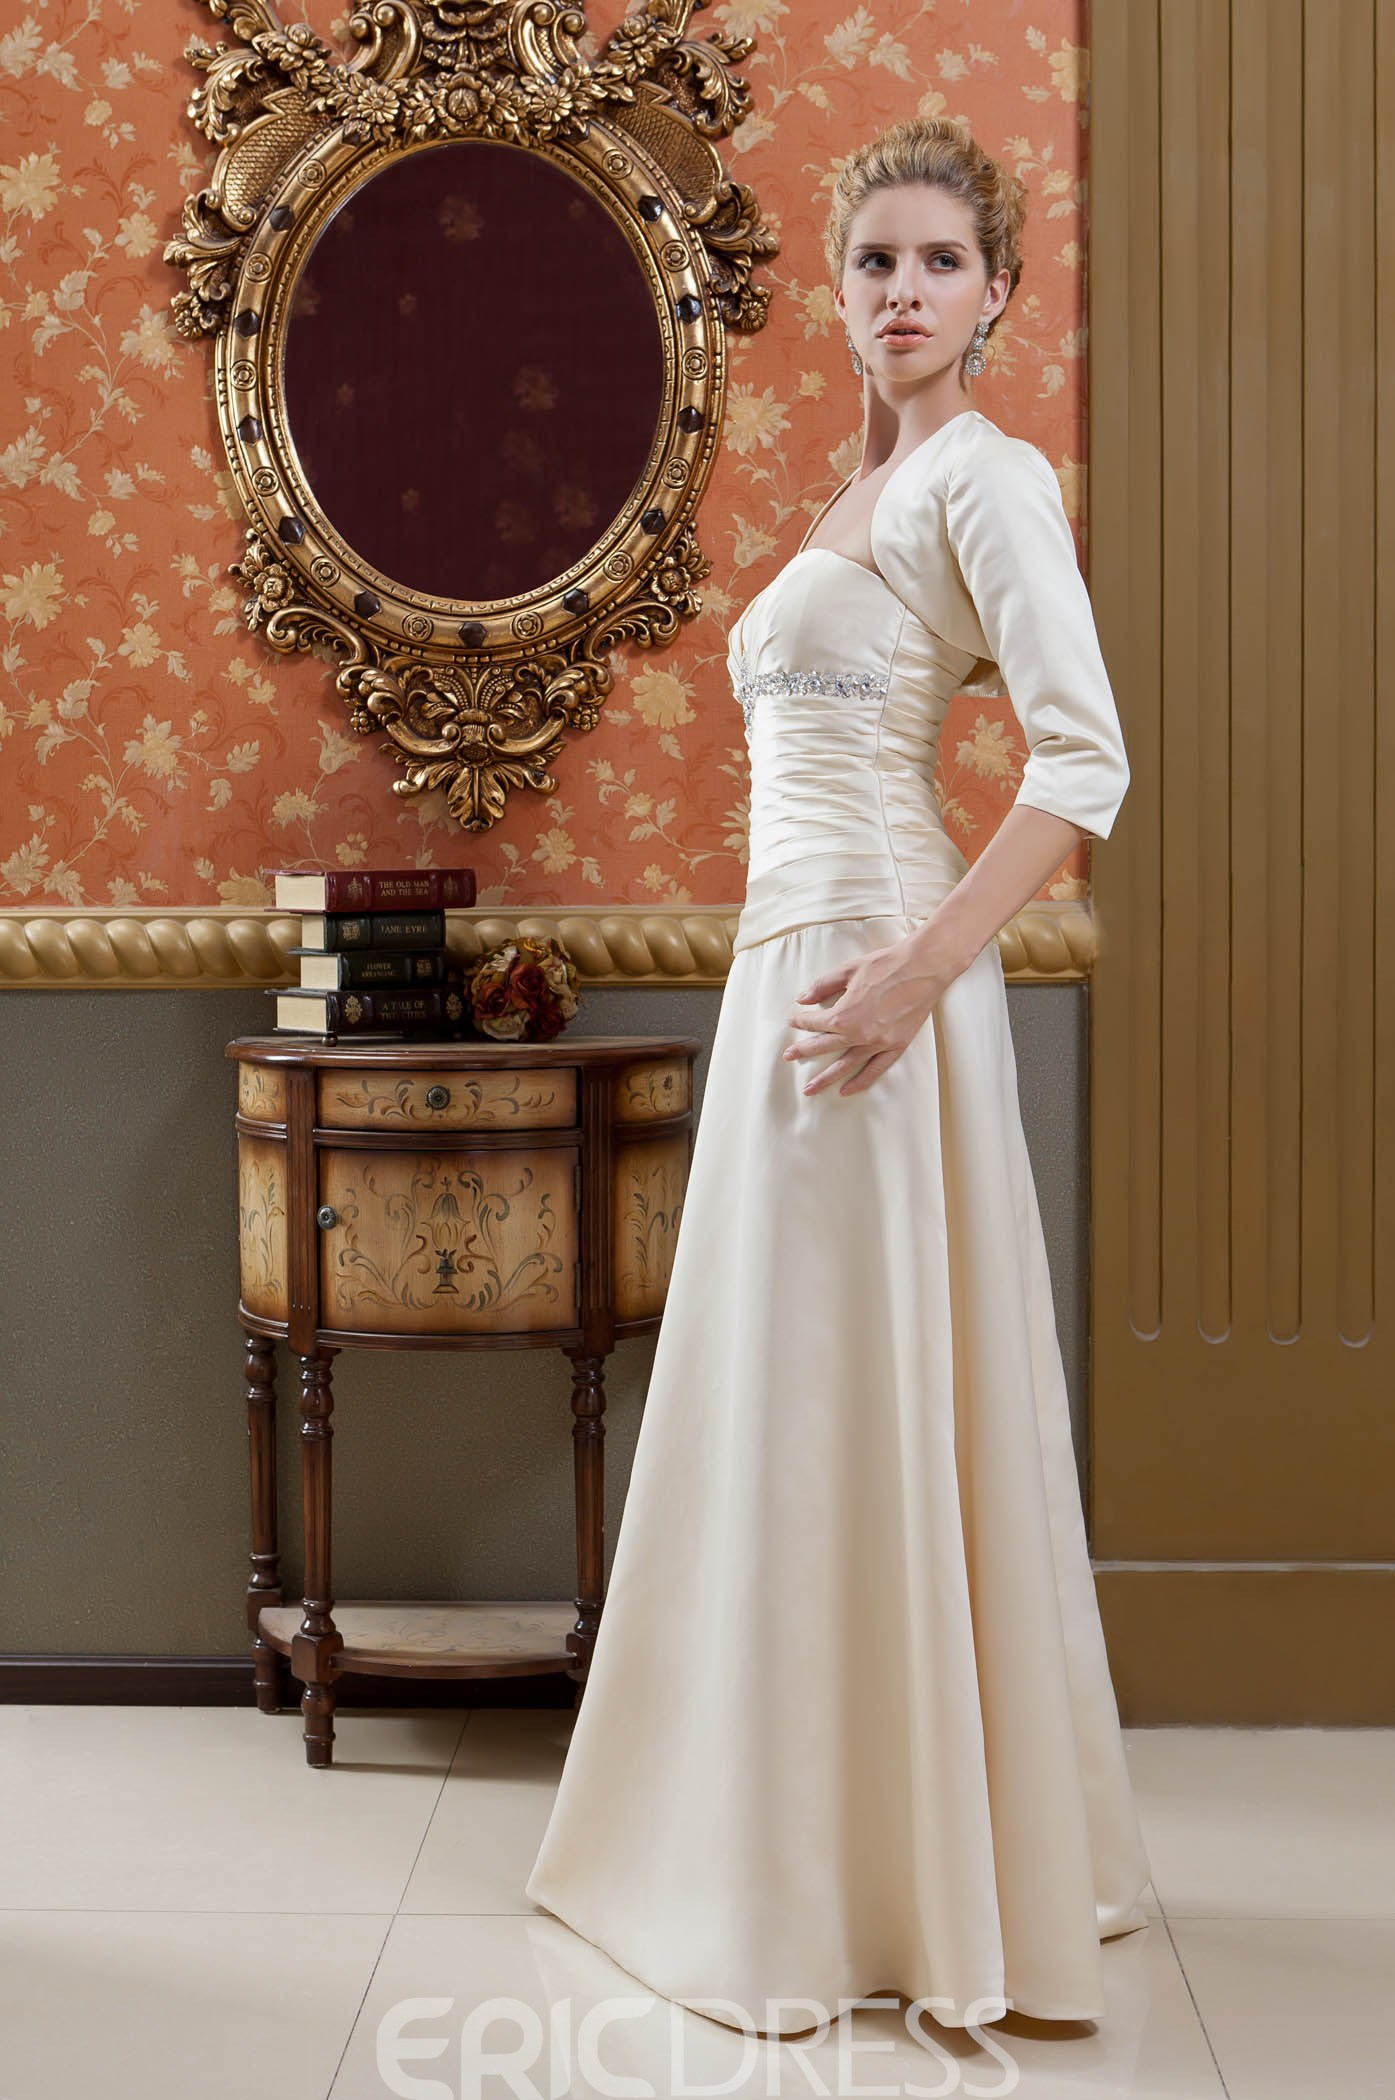 Delicated Sheath/Column Strapless Floor-Length Veronica's Mother of the Bride Dress With Jacket/Shawl